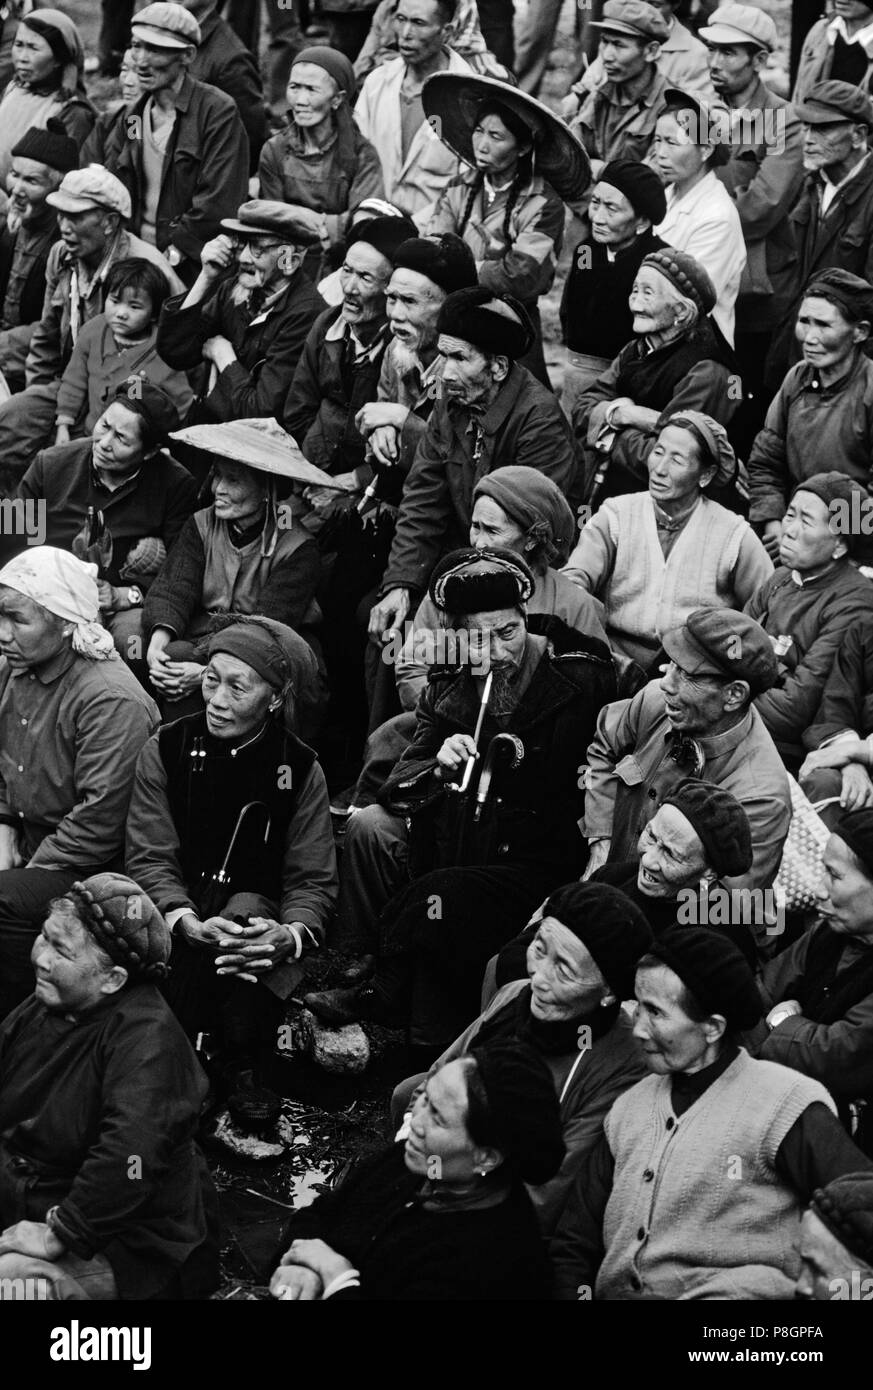 A CROWD of ethnic BAI PEOPLE watches a CHINESE OPERA PERFORMANCE in the farming town of DALI - YUNNAN, CHINA - Stock Image